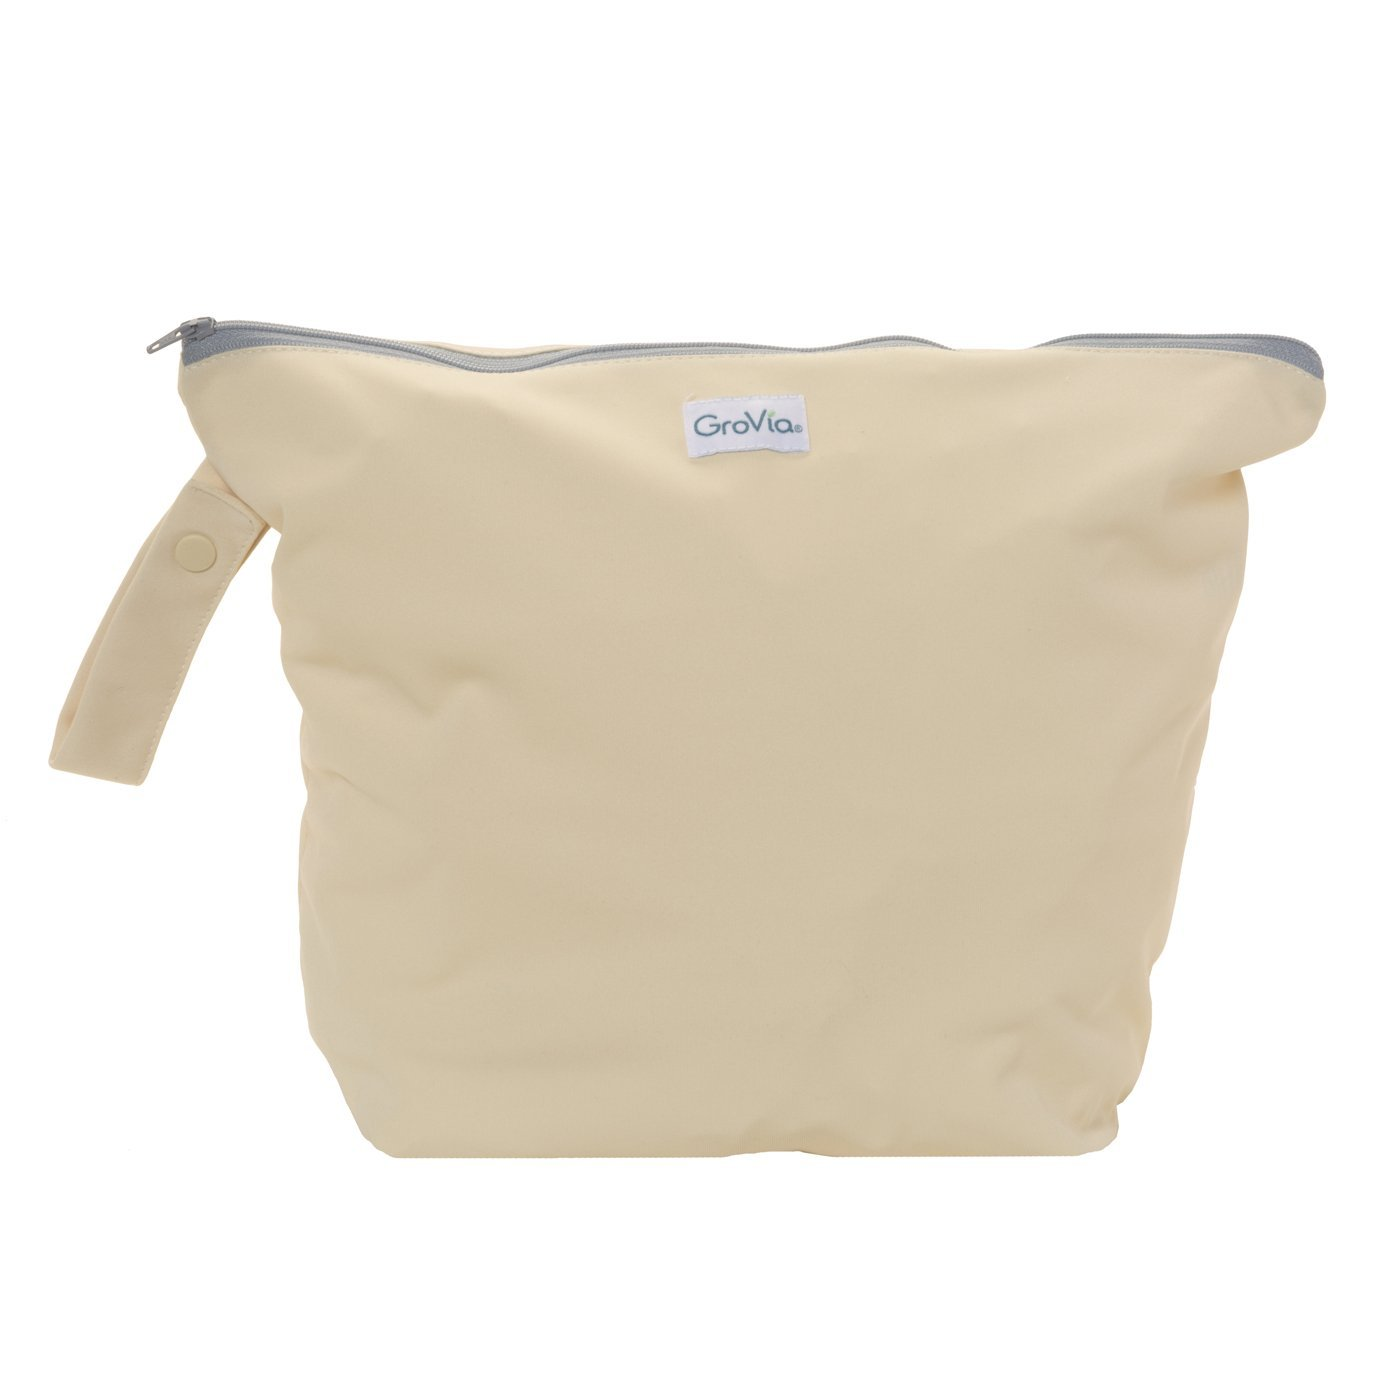 GroVia Reusable Zippered Wetbag for Baby Cloth Diapering and More (Vanilla)